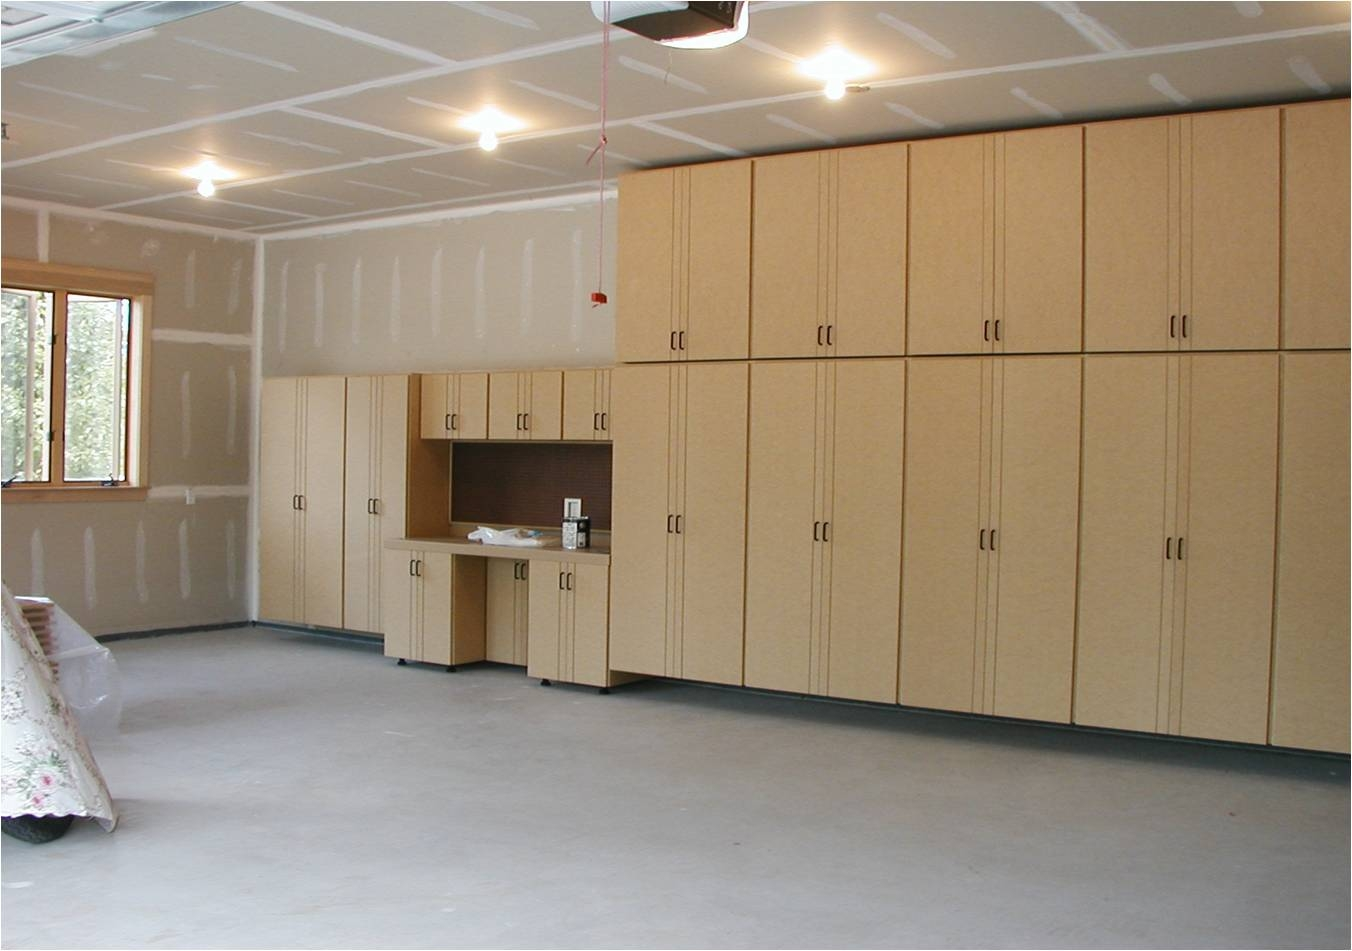 Ceiling Storage Cabinets With Doors